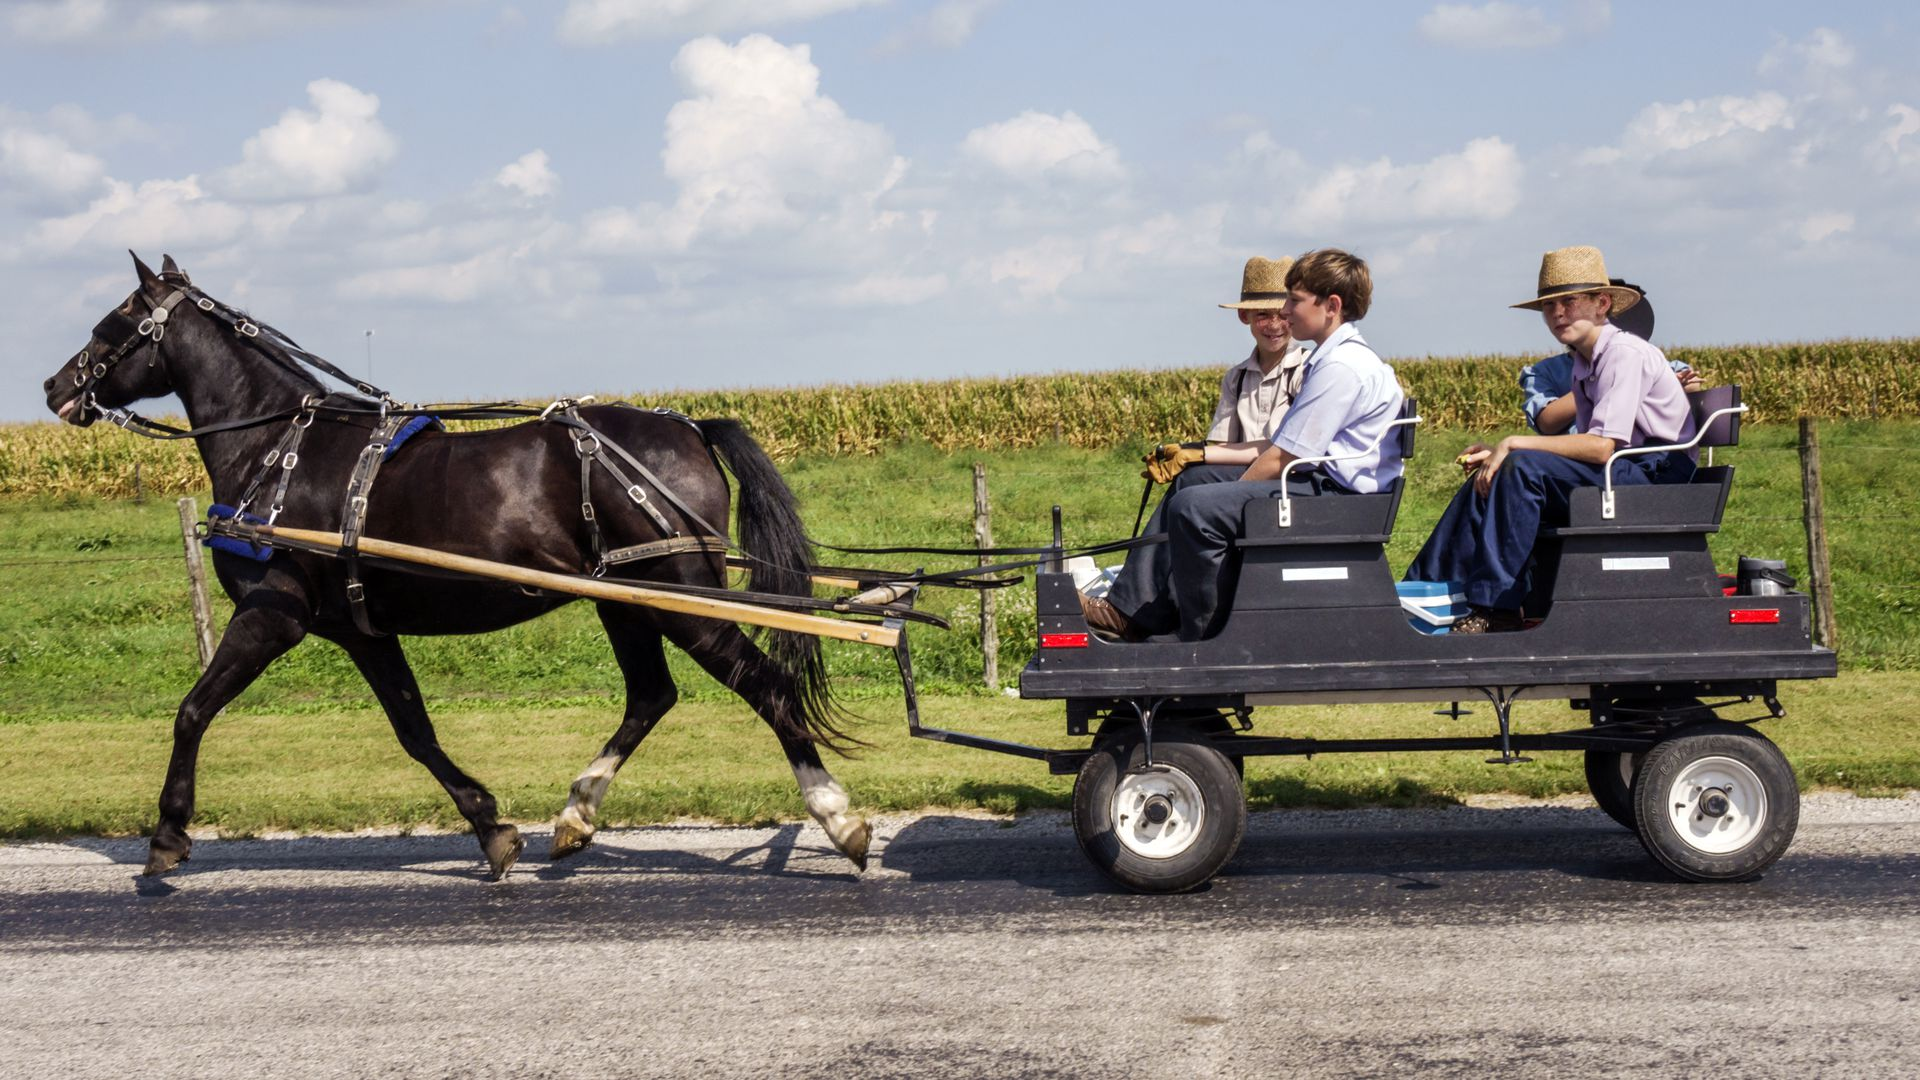 Amish boys being pulled in a horse and buggy.